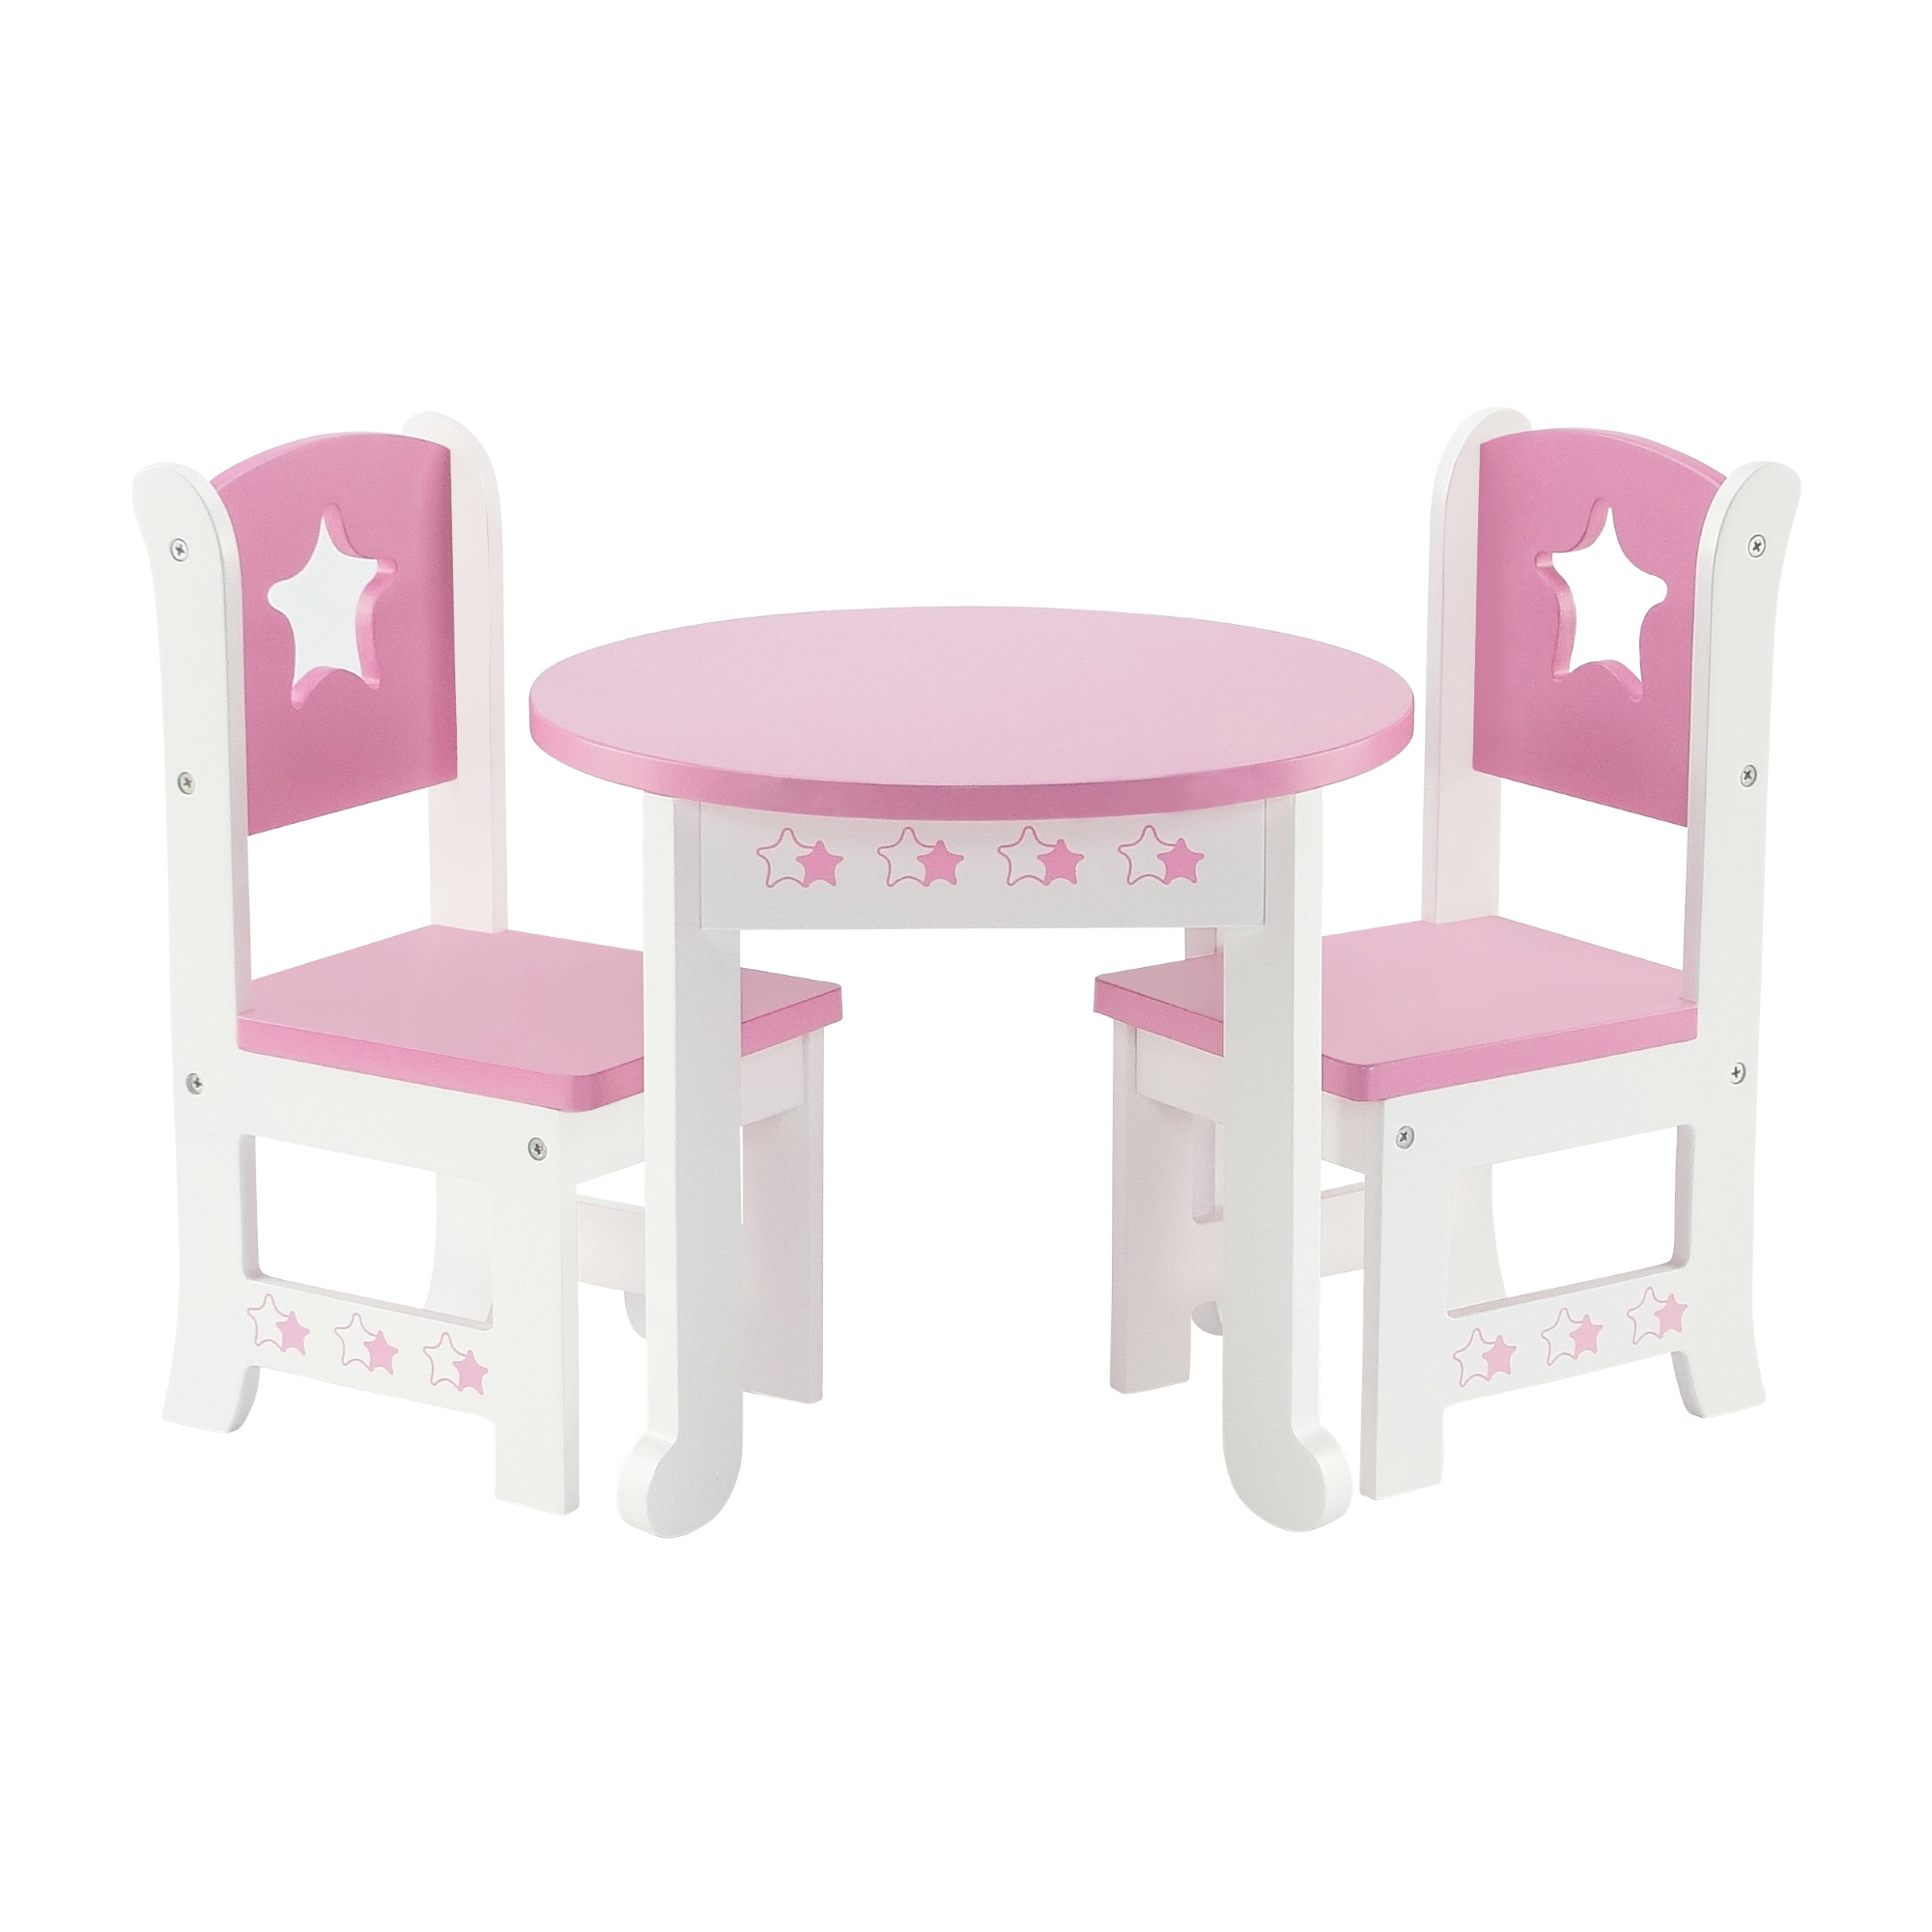 18 Inch Doll Furniture | Lovely Pink and White Table and 2 Chair Dining Set with  sc 1 st  Walmart & 18 Inch Doll Furniture | Lovely Pink and White Table and 2 Chair ...